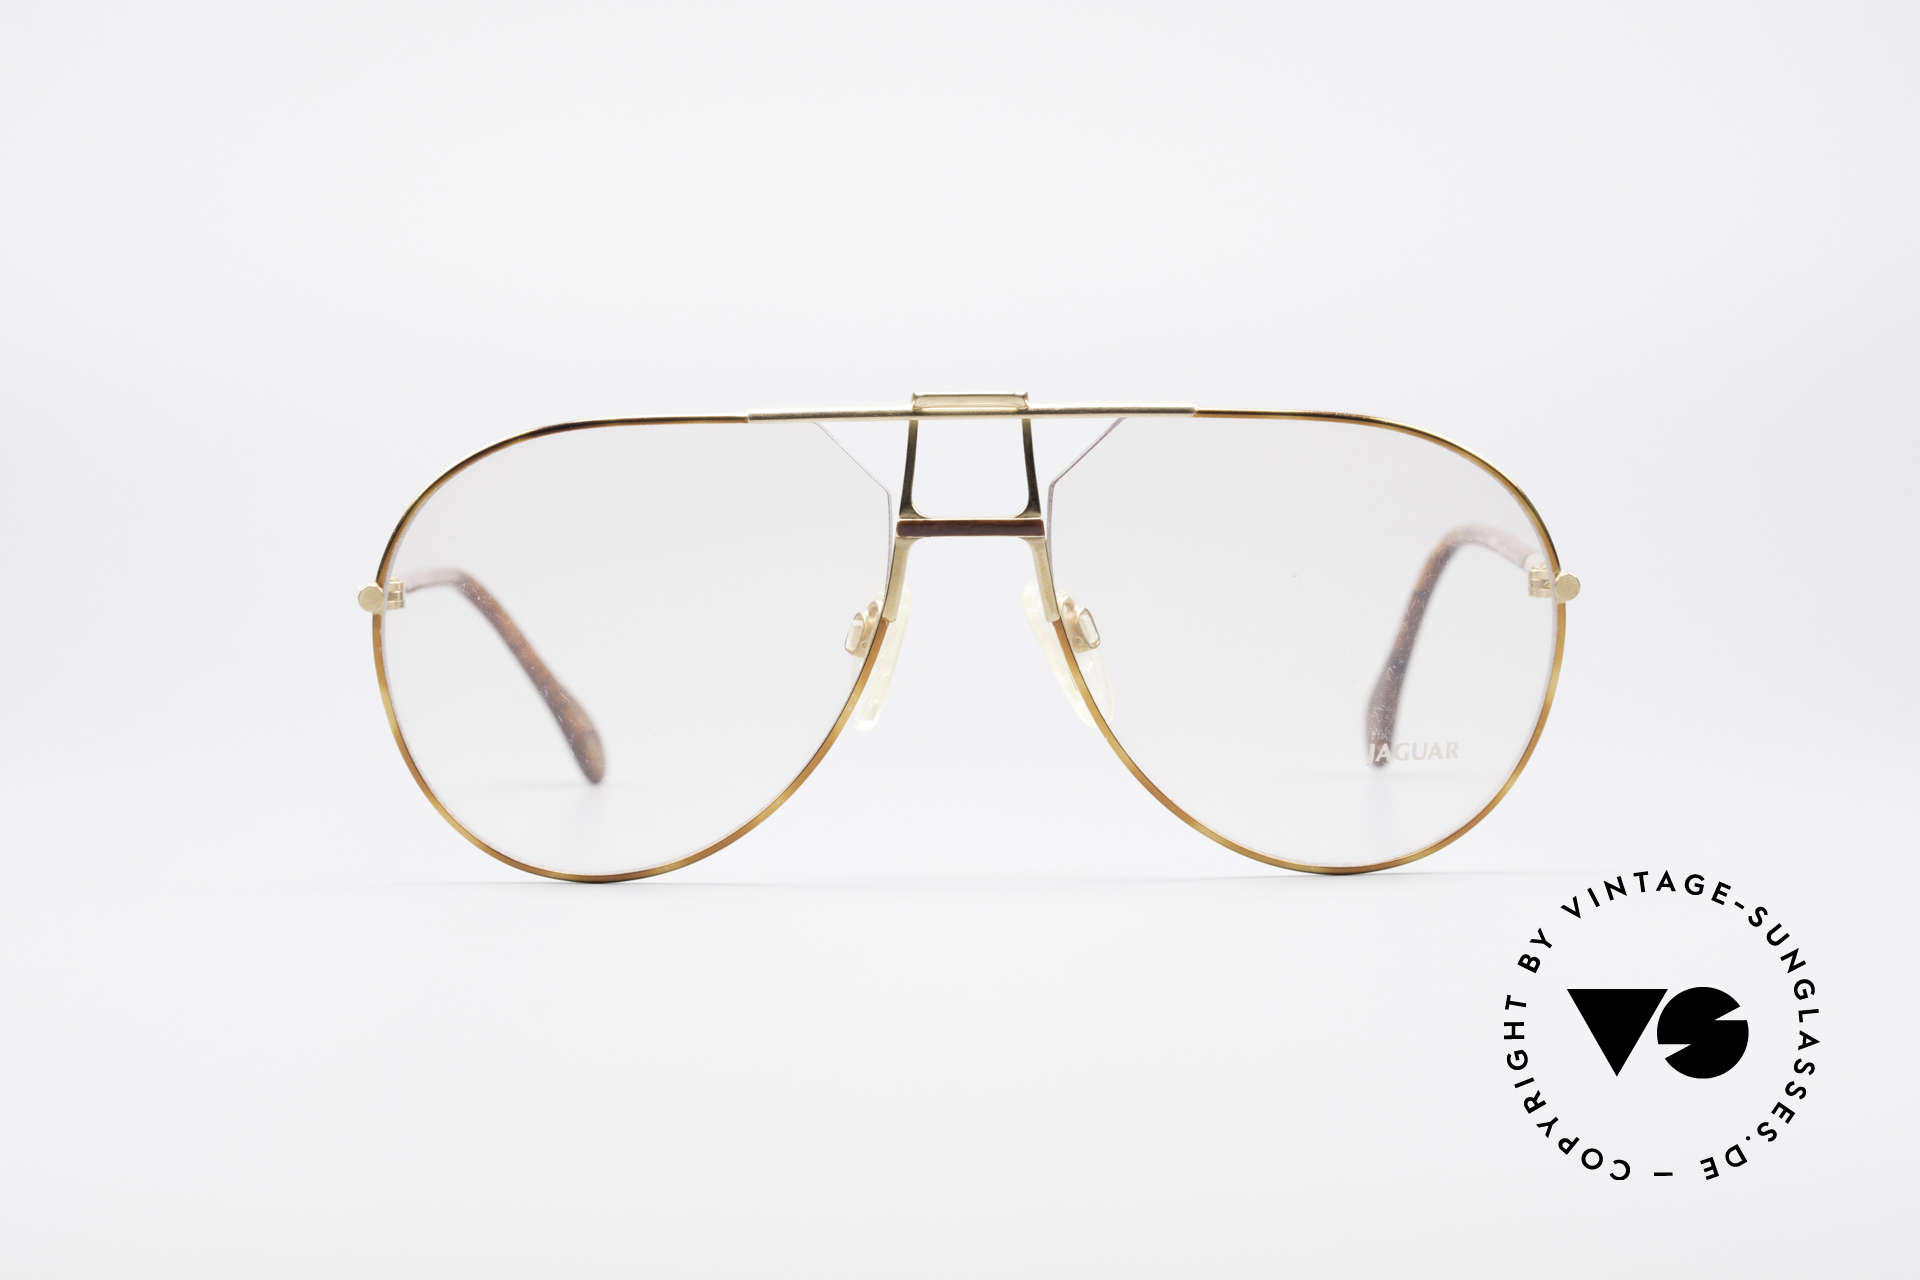 Jaguar 407 80's Luxury Eyeglasses, the perfect accessory for an old XJS or 'E-Type', Made for Men